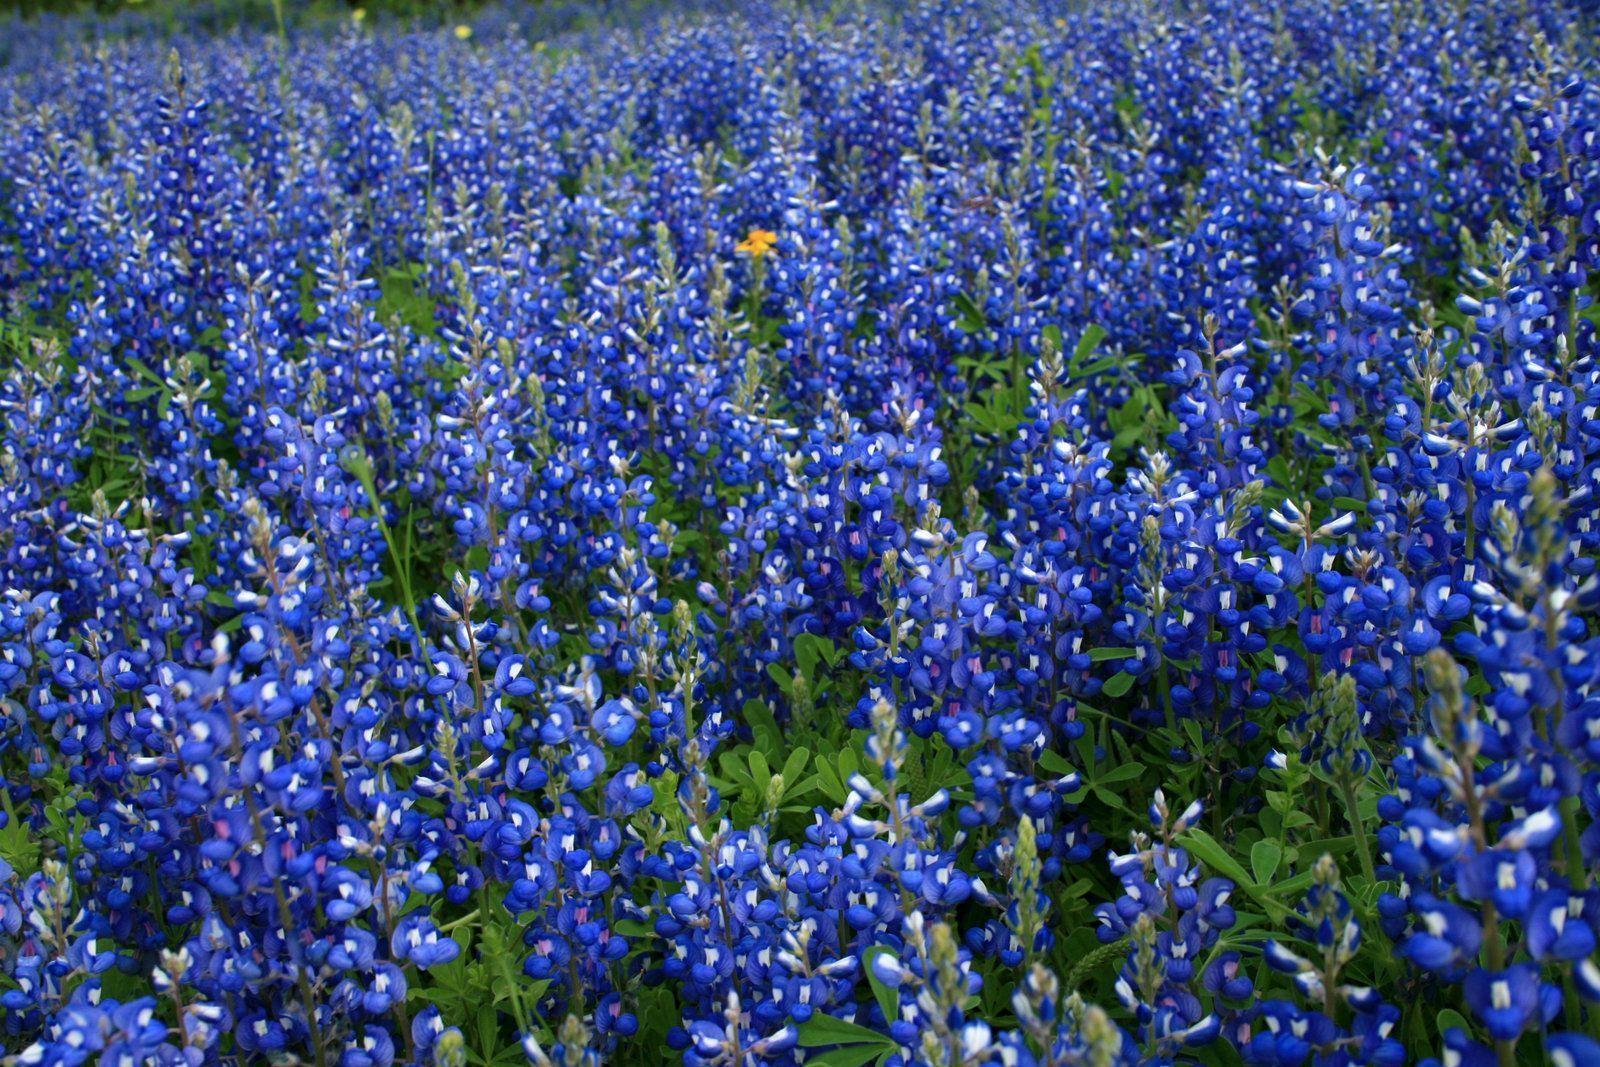 163 Types of Flowers A to Z With Pictures J Birdny Pictures of blue bonnets